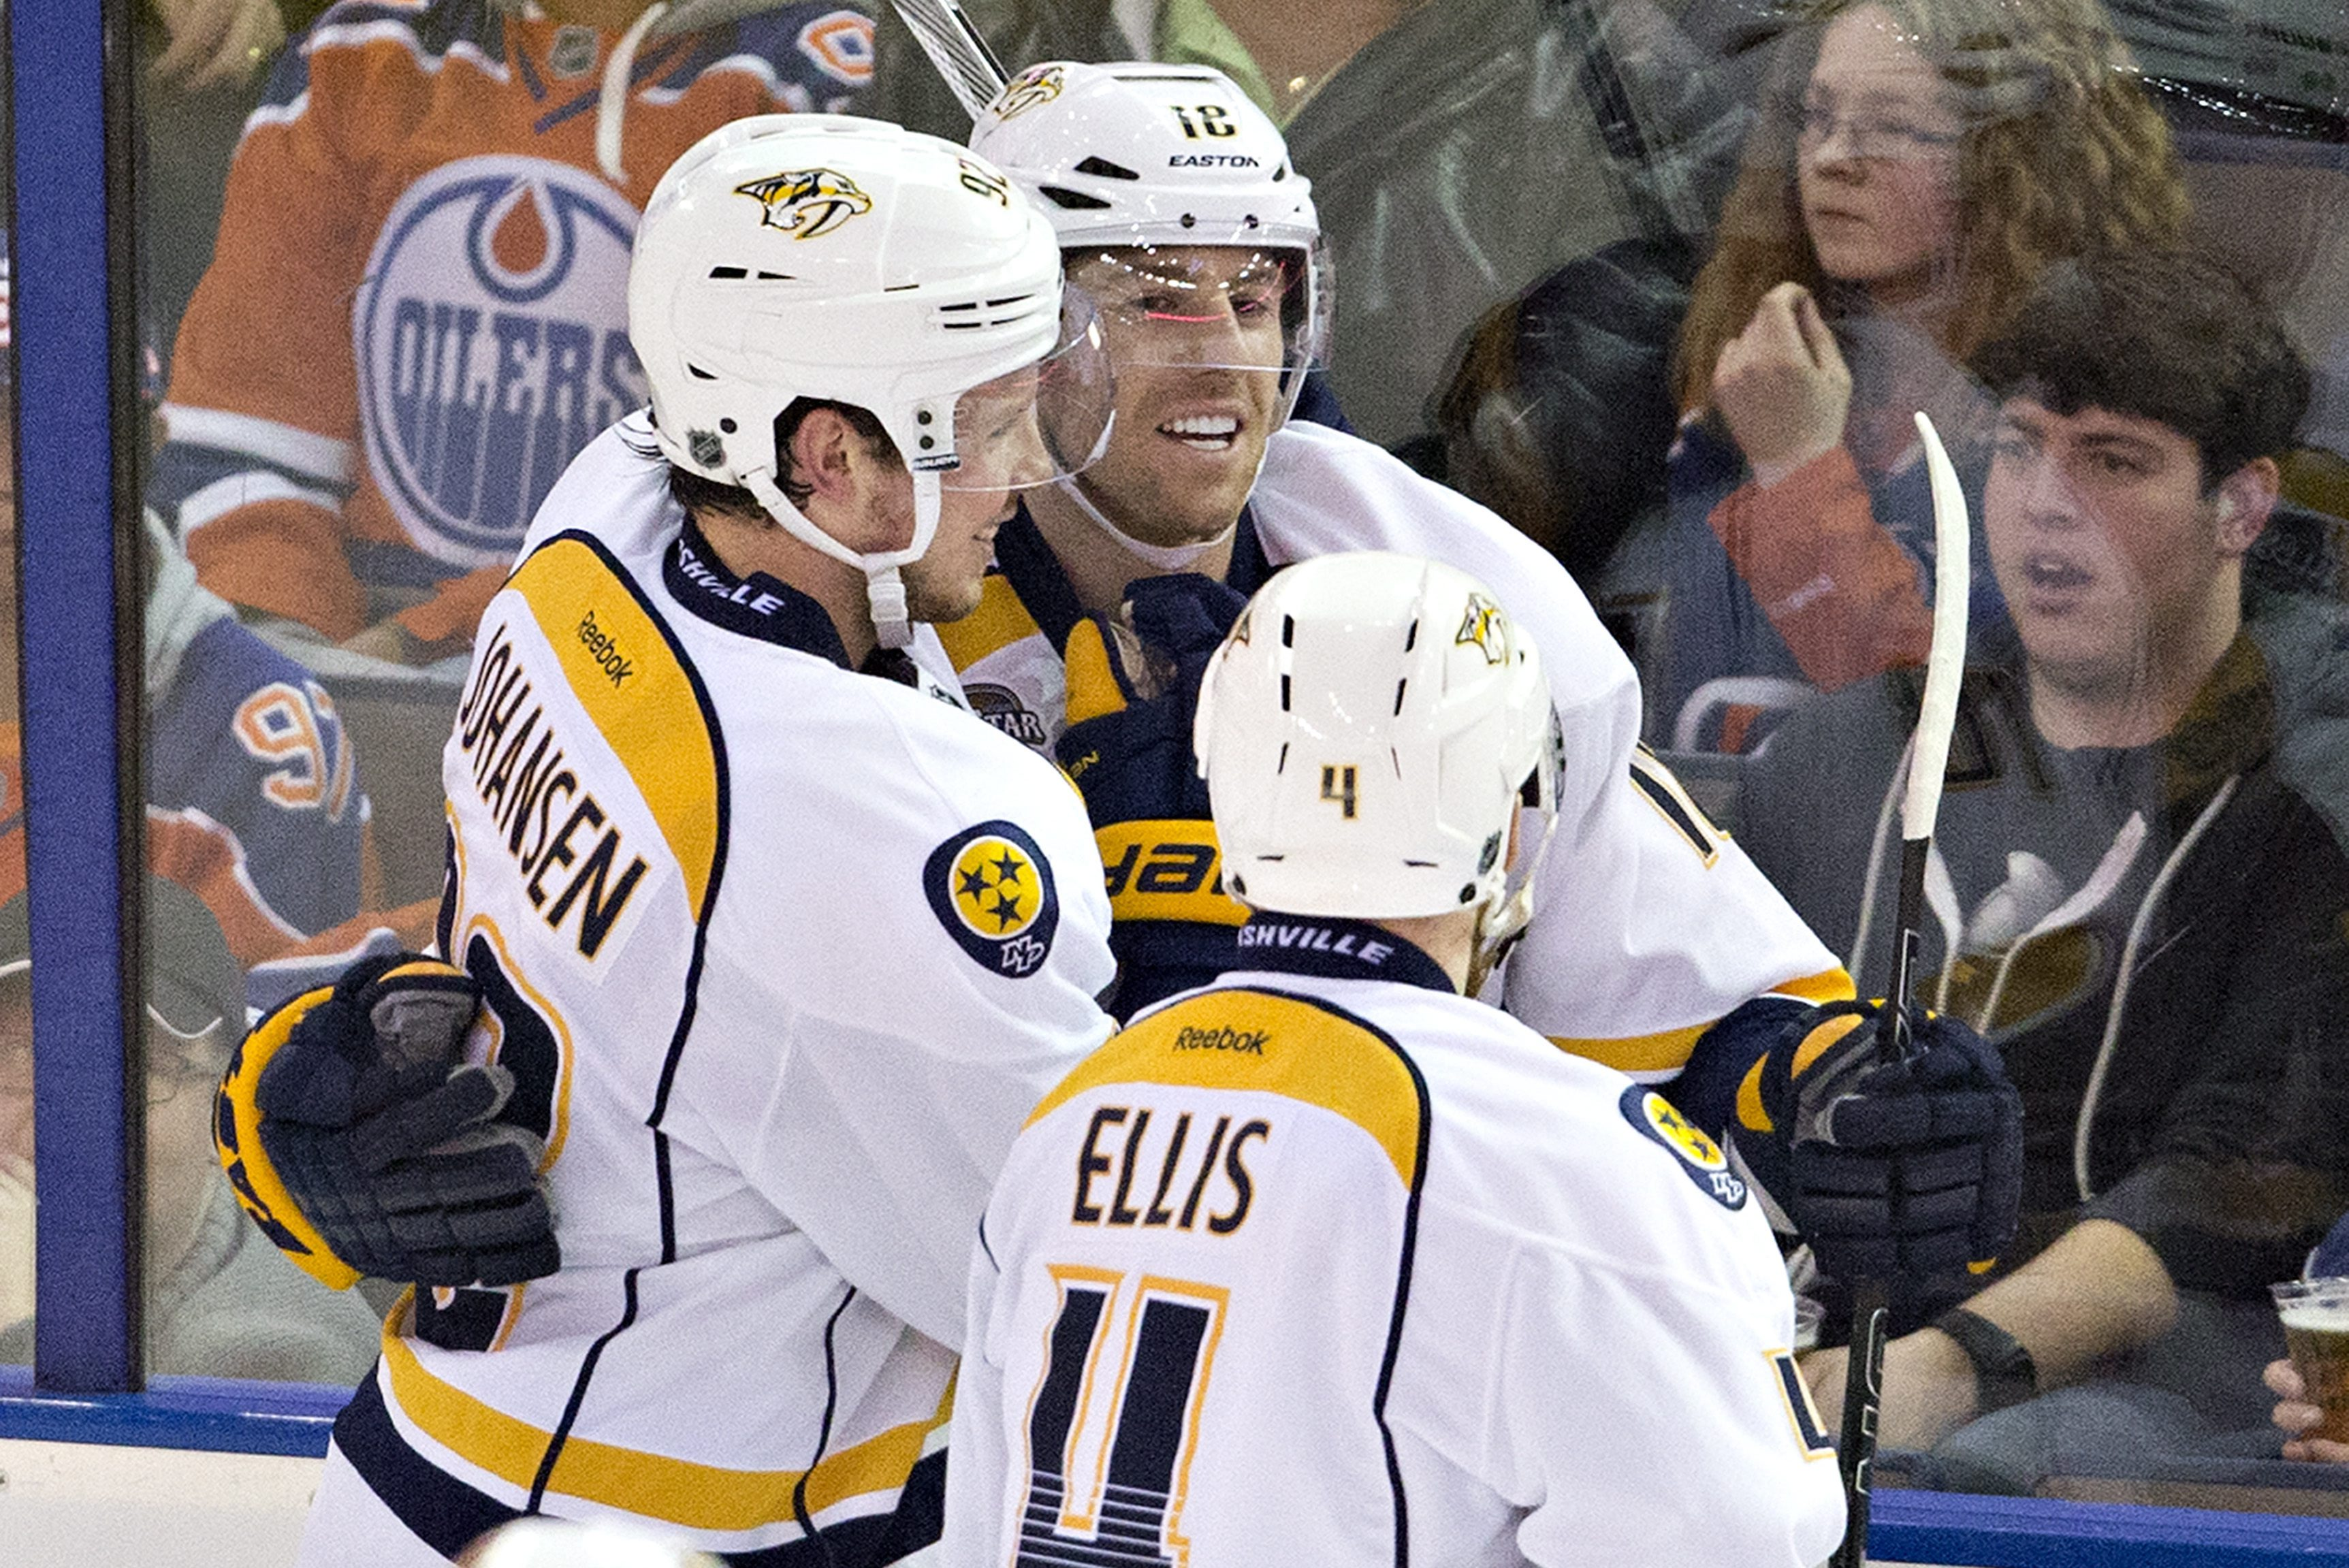 Nashville Predators' Ryan Johansen (92), James Neal (18) and Ryan Ellis (4) celebrate a goal against the Edmonton Oilers during the third period of an NHL hockey game in Edmonton, Alberta, Monday March 14, 2016. (Jason Franson/The Canadian Press via AP) M